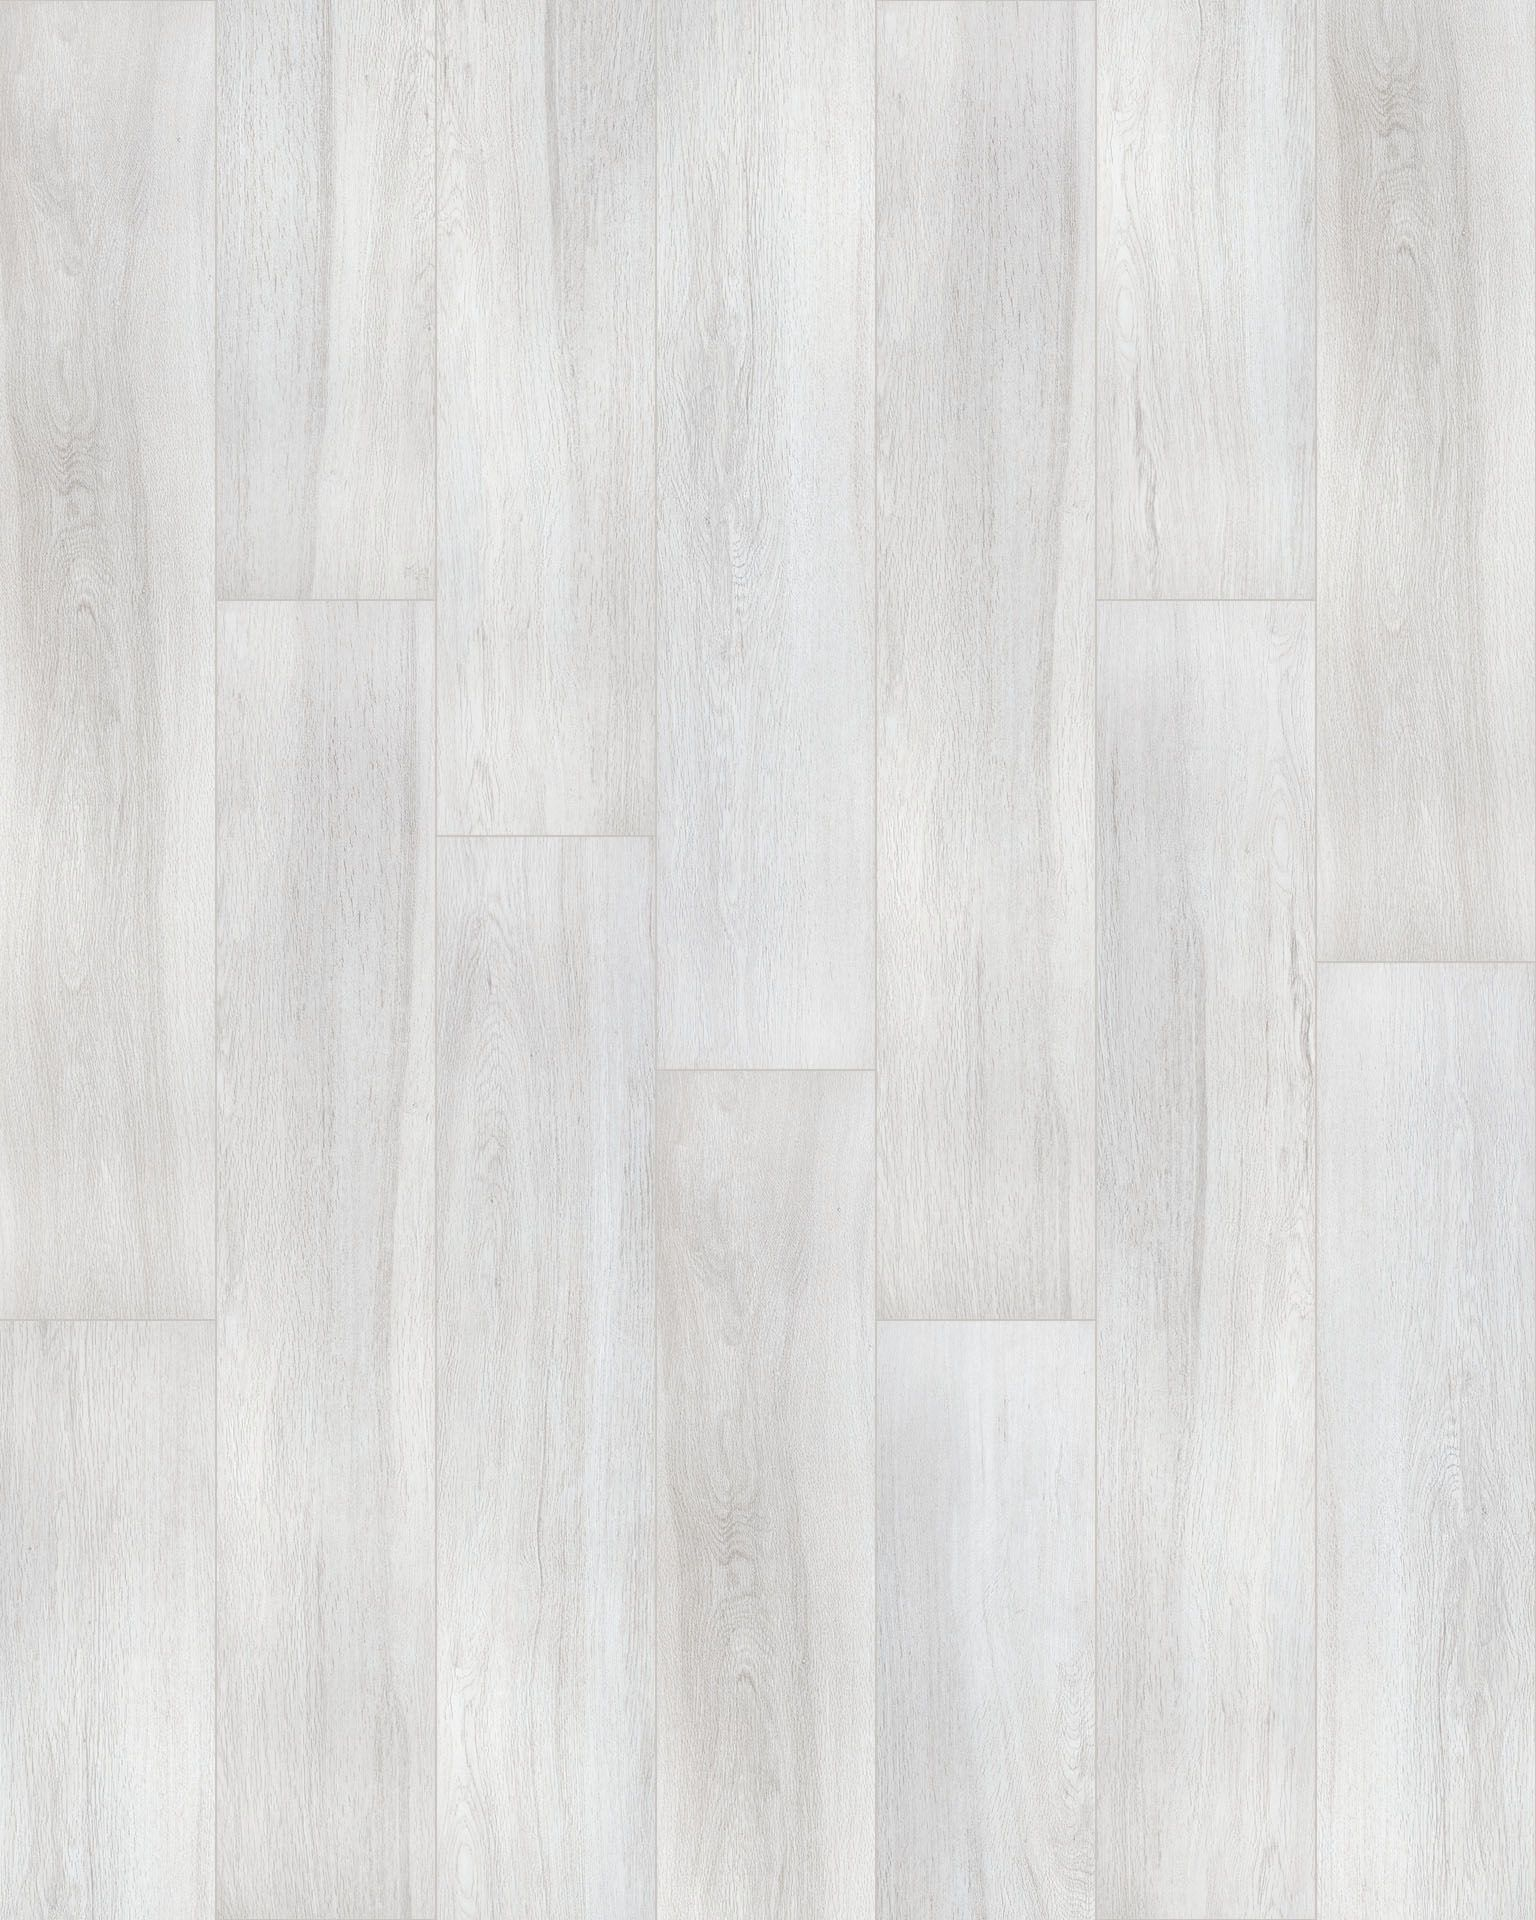 White Floor Texture : white, floor, texture, Guayacan, Wood-Look, Tiles